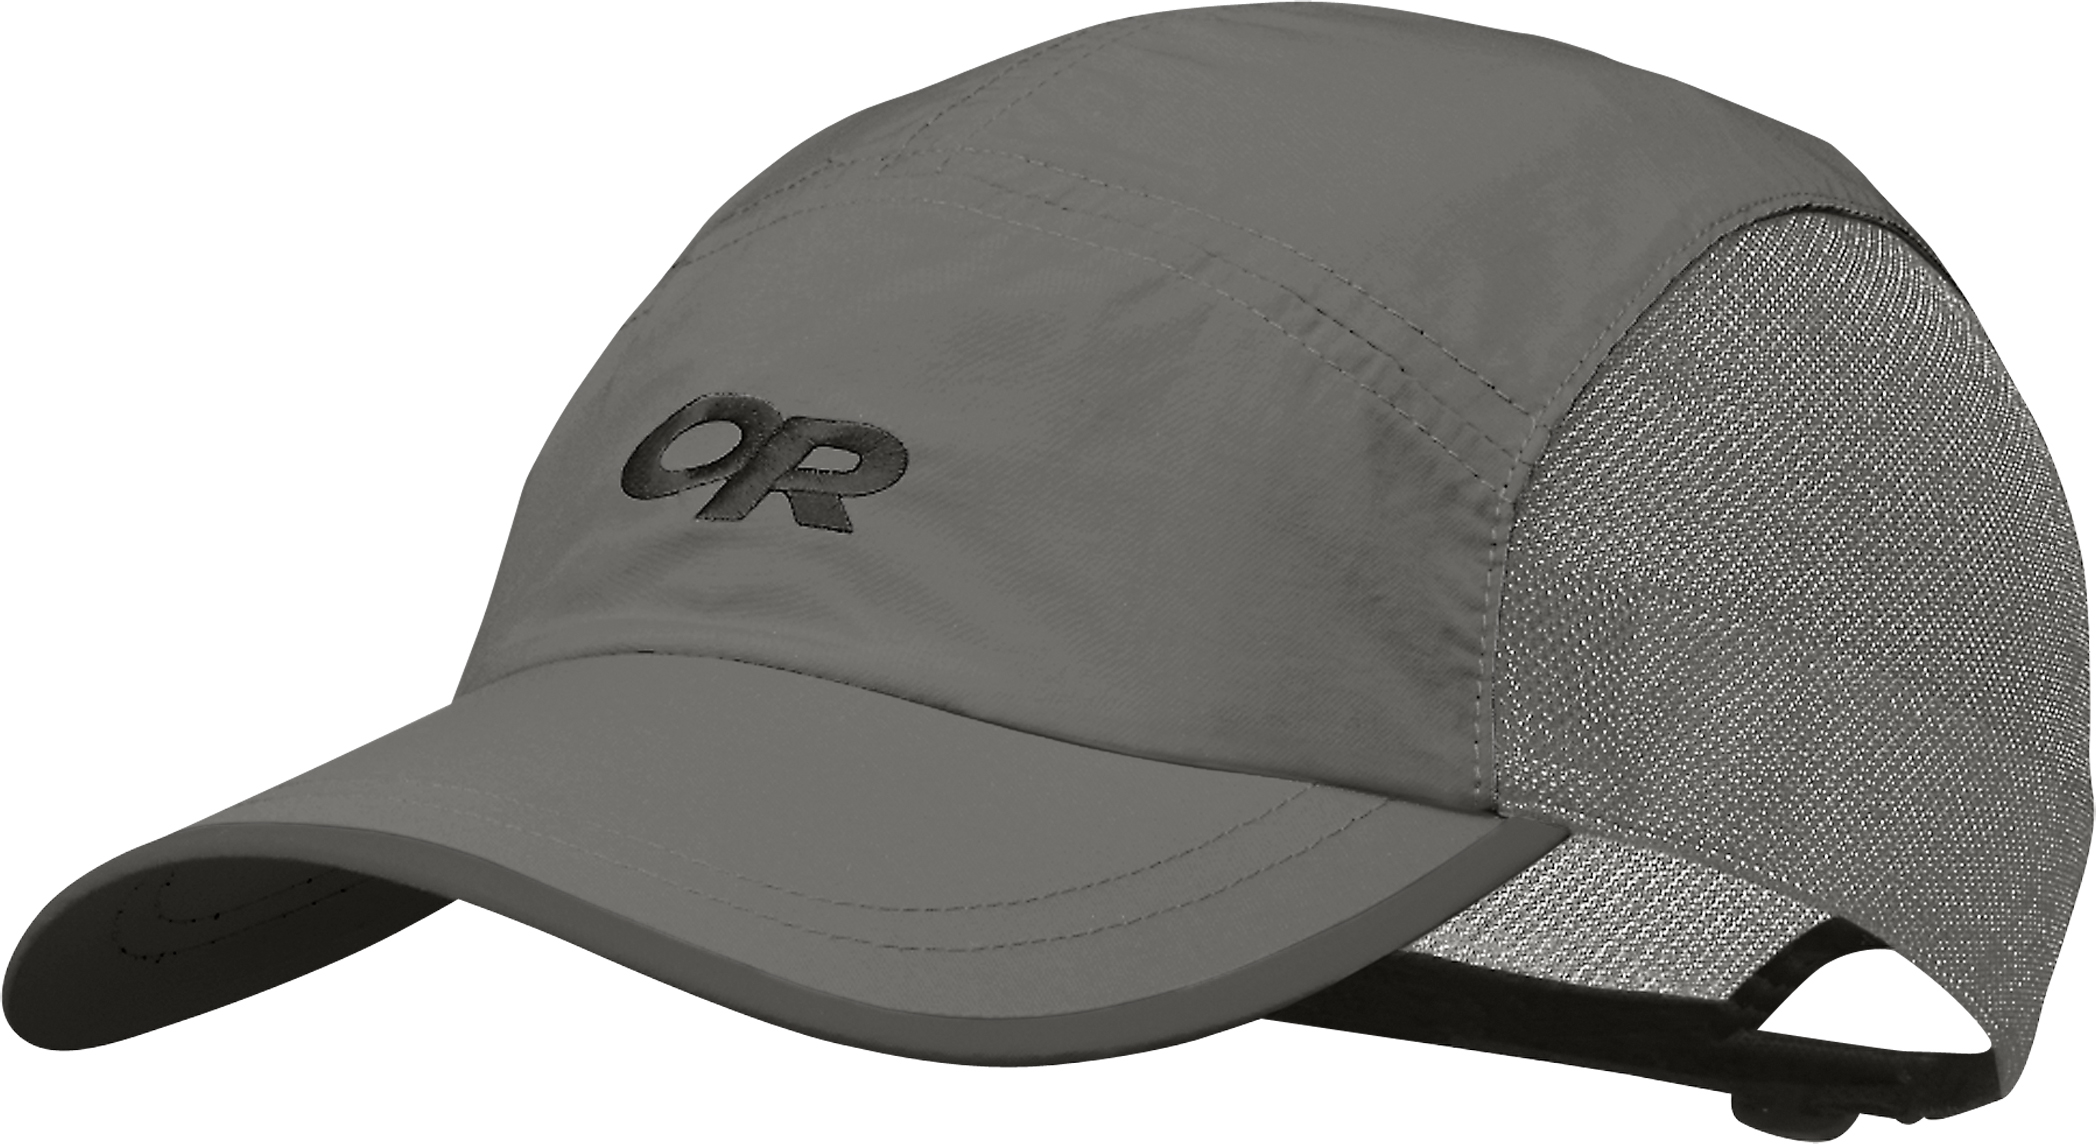 Running and fitness hats 1b46e82d117